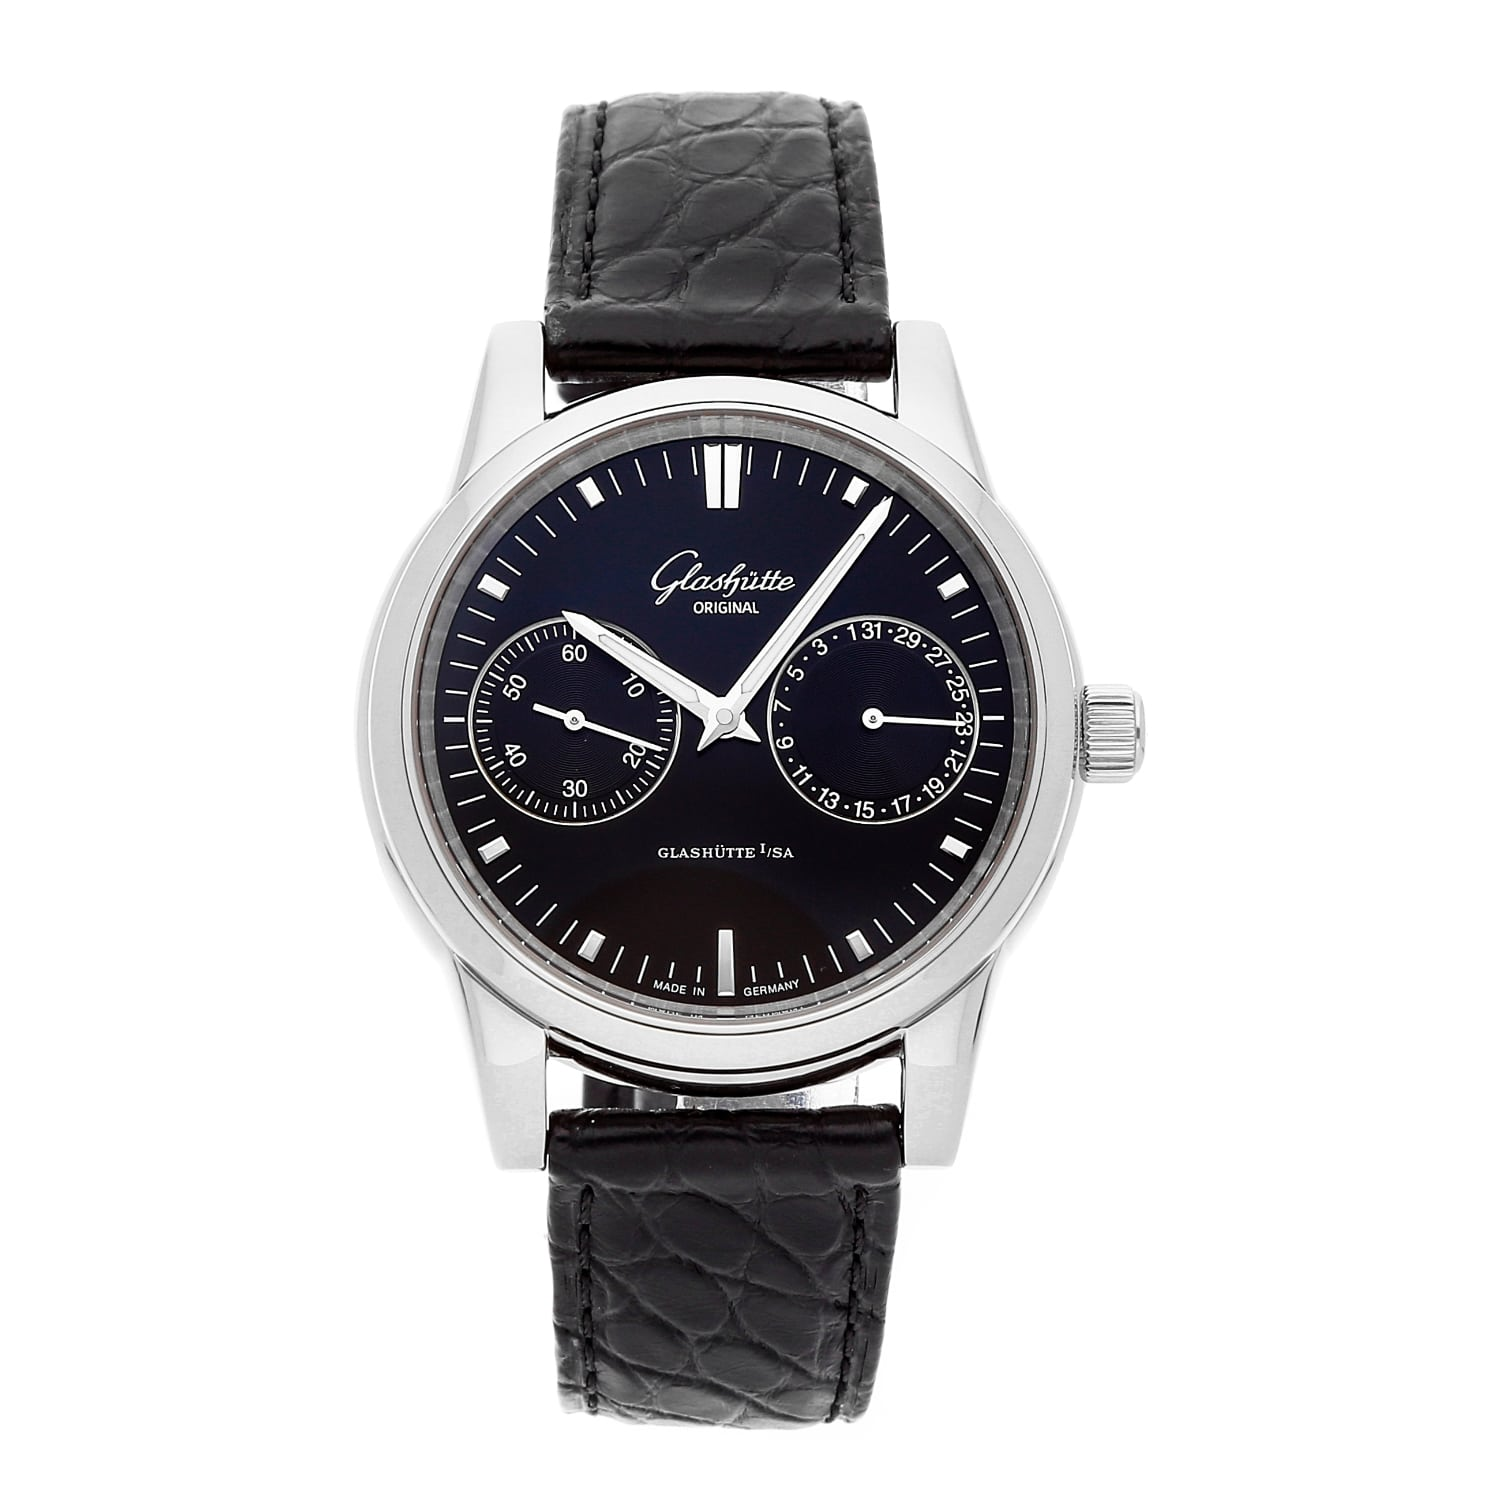 Glashutte Watch via WatchBox Timepieces